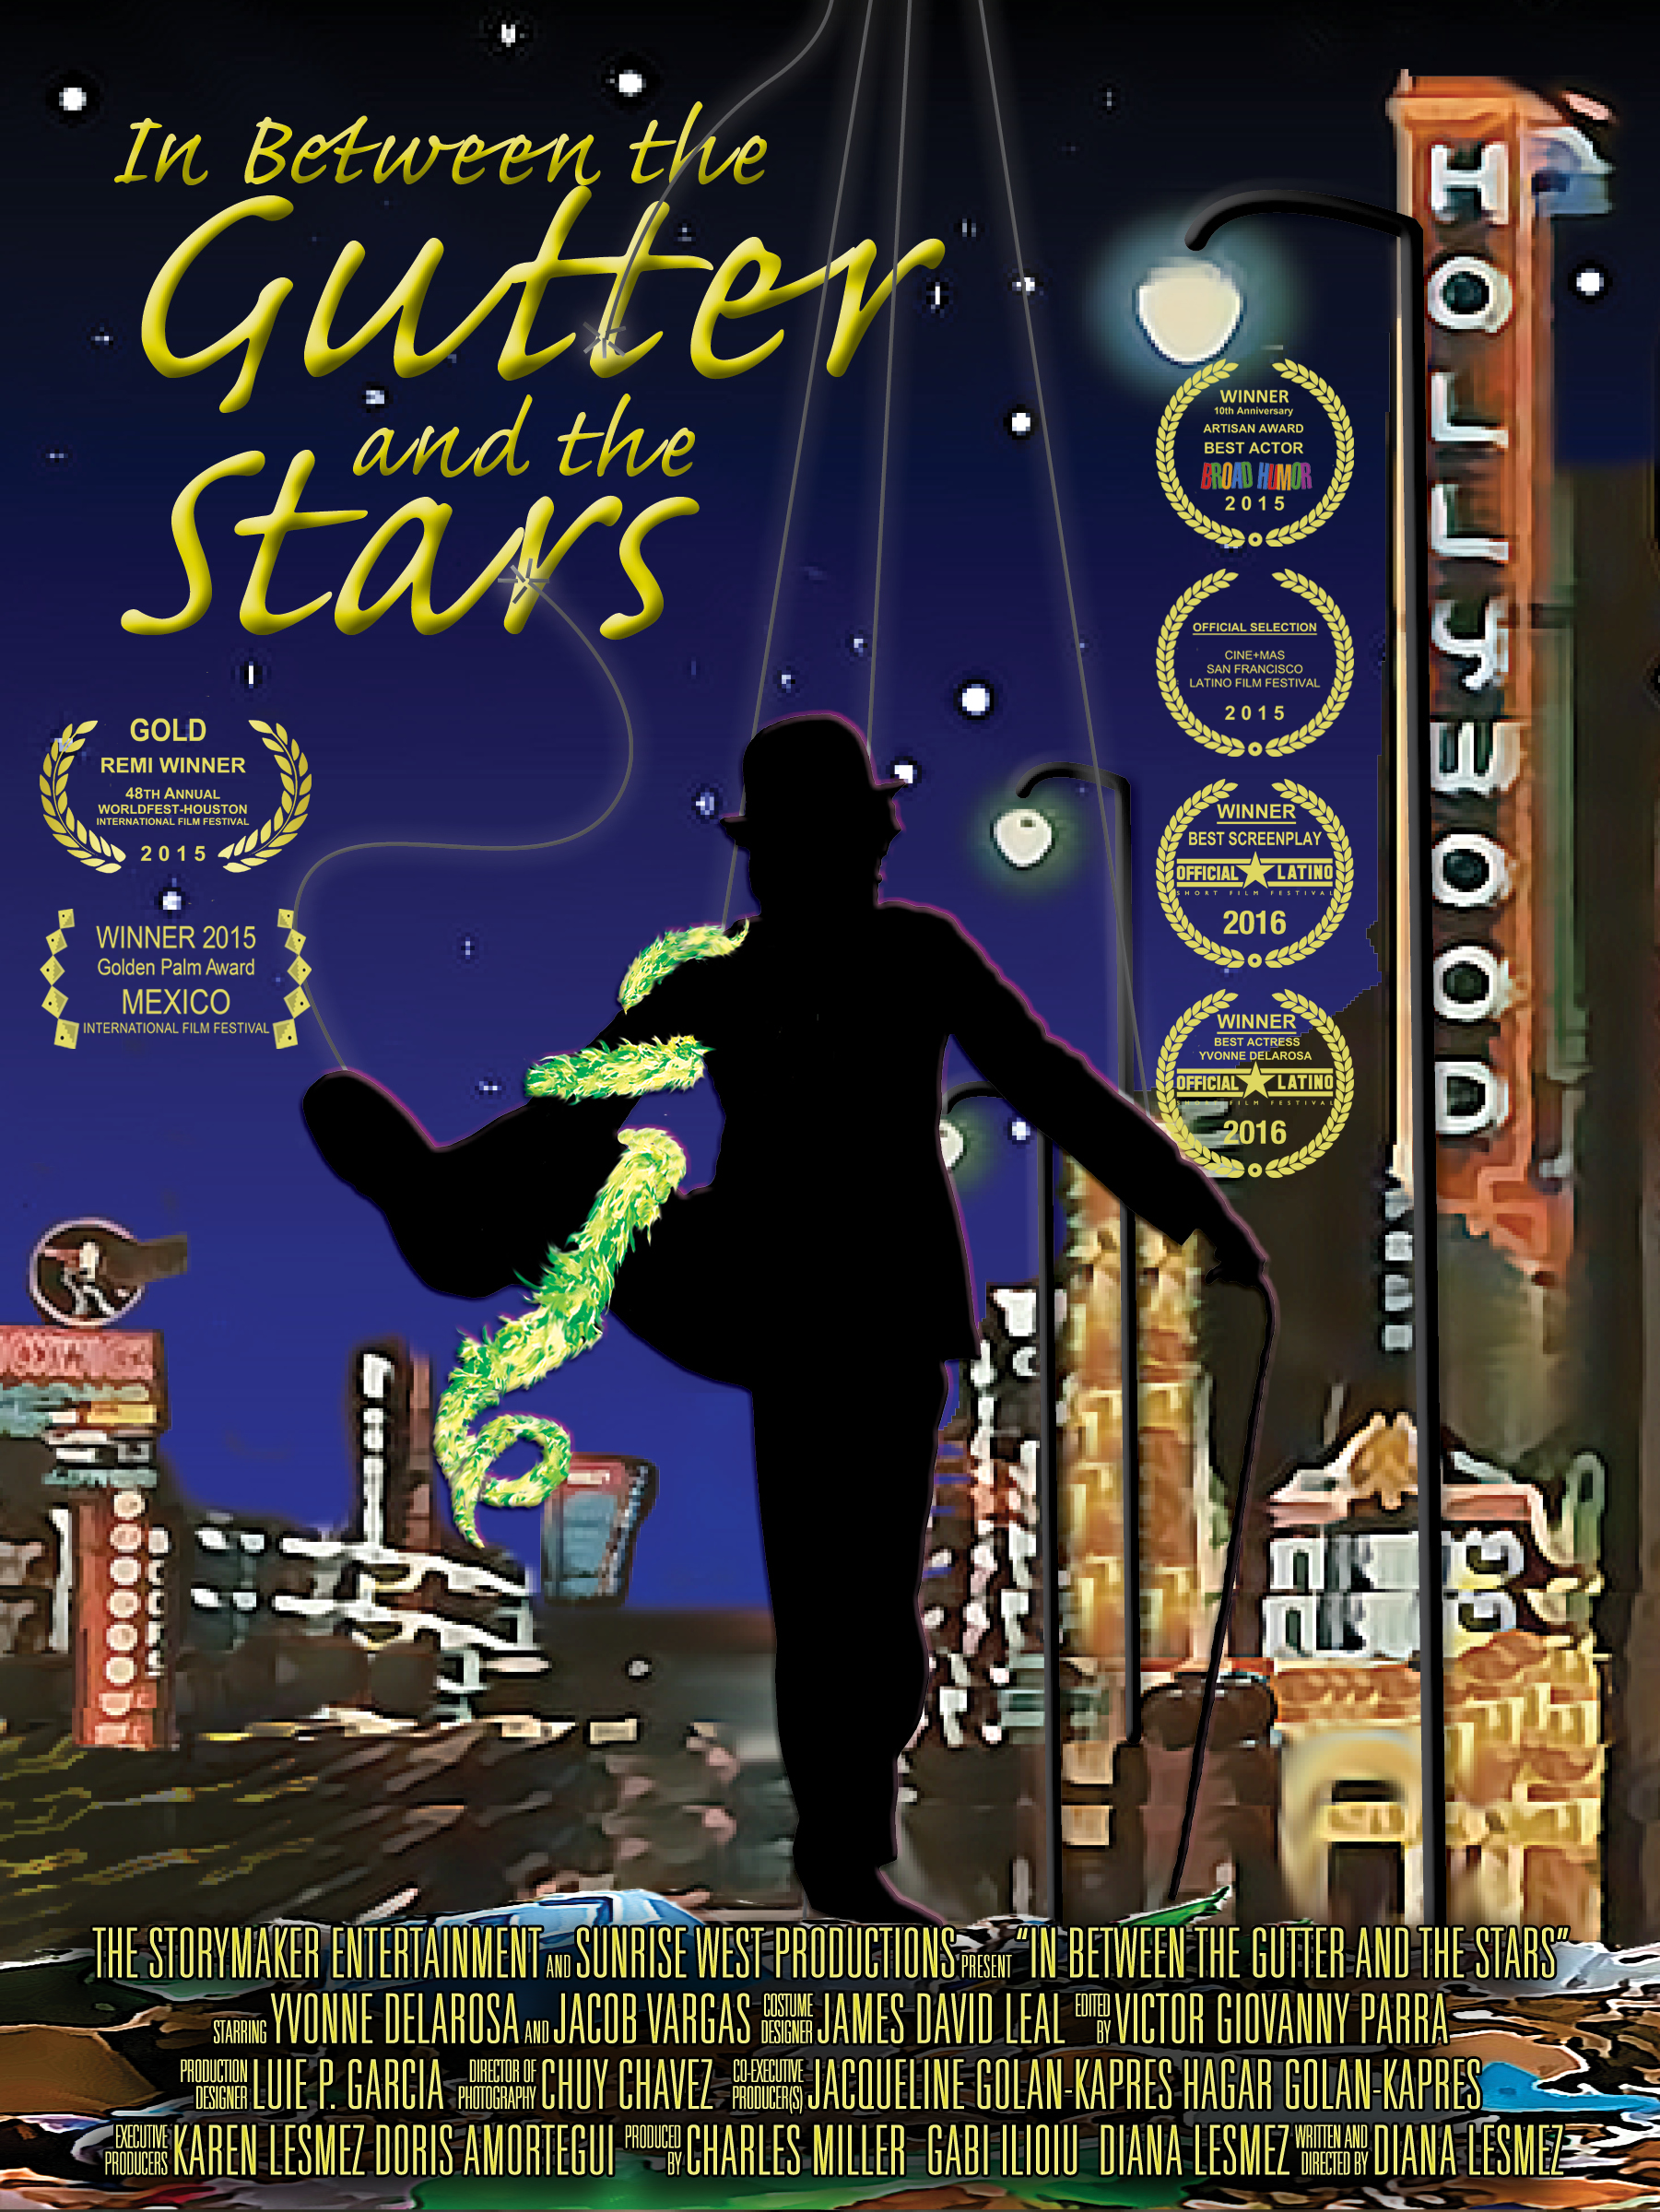 In Between the Gutter and the Stars